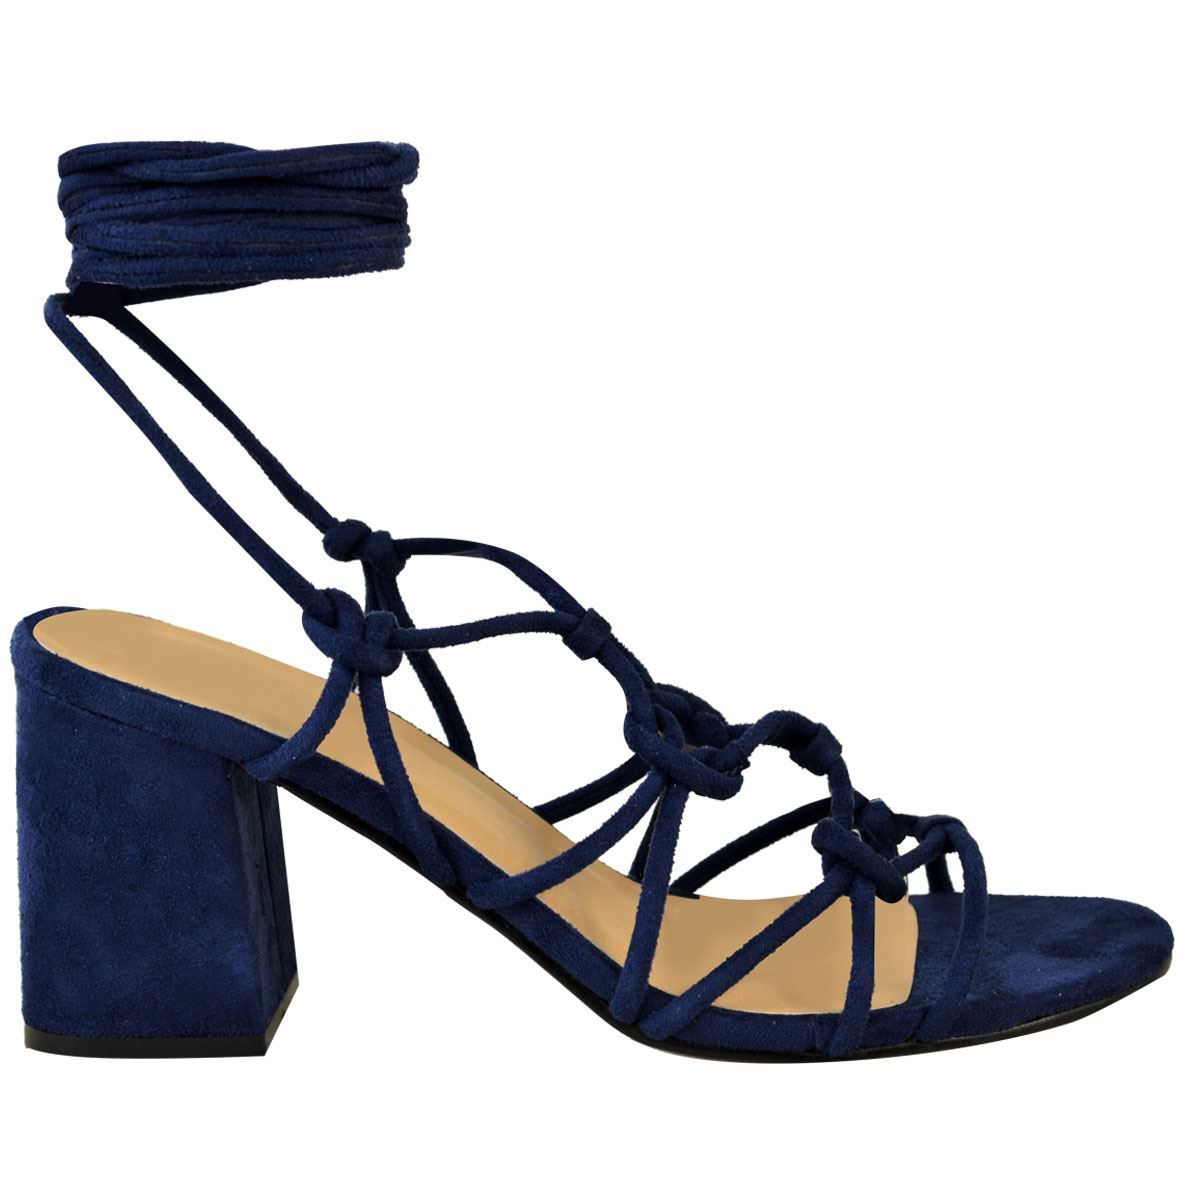 2926ebb45 Womens Ladies Mid Low Block Heel Summer Strappy Sandals Ankle Lace ...